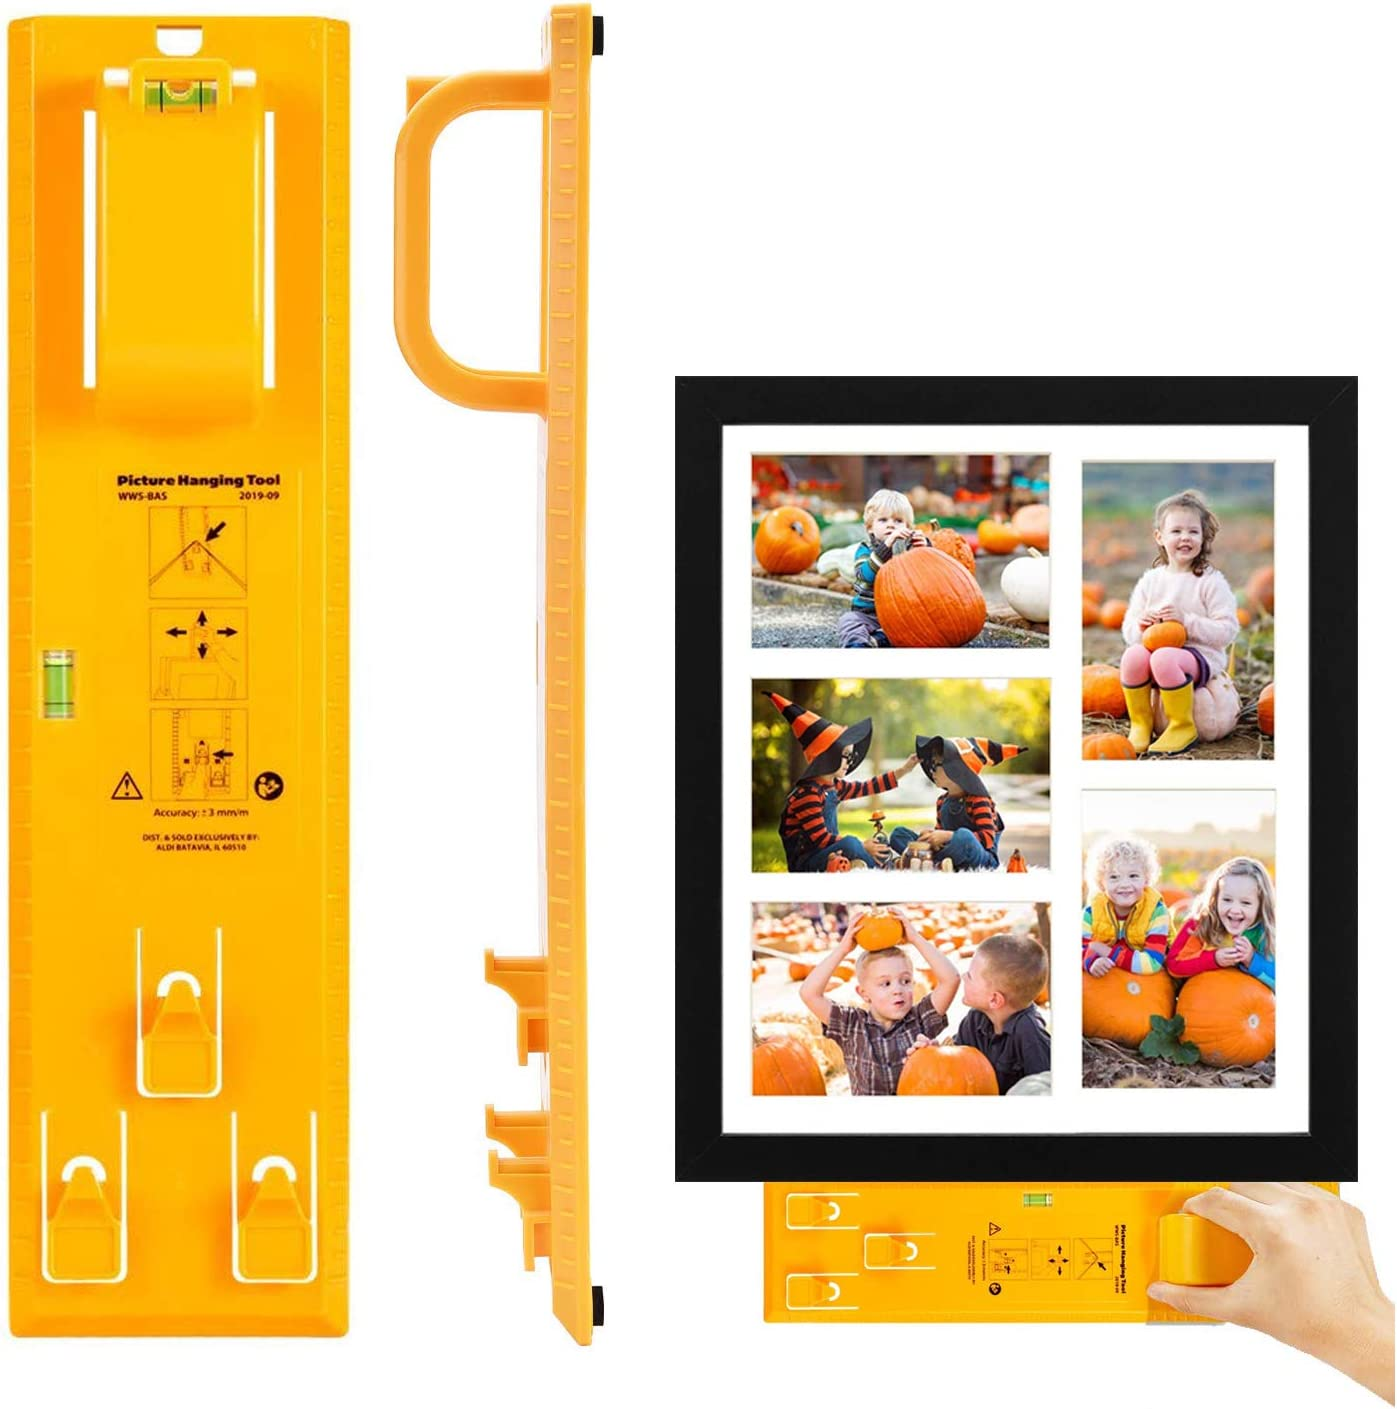 Artwork and Socket Mirrors Clocks Picture Frame Hanger Tool with Level Ruler Picture Hanger Wall Hanging Kit Measuring Tool Suitable for Hanging Pictures 2020 New Upgrade Picture Hanging Tool